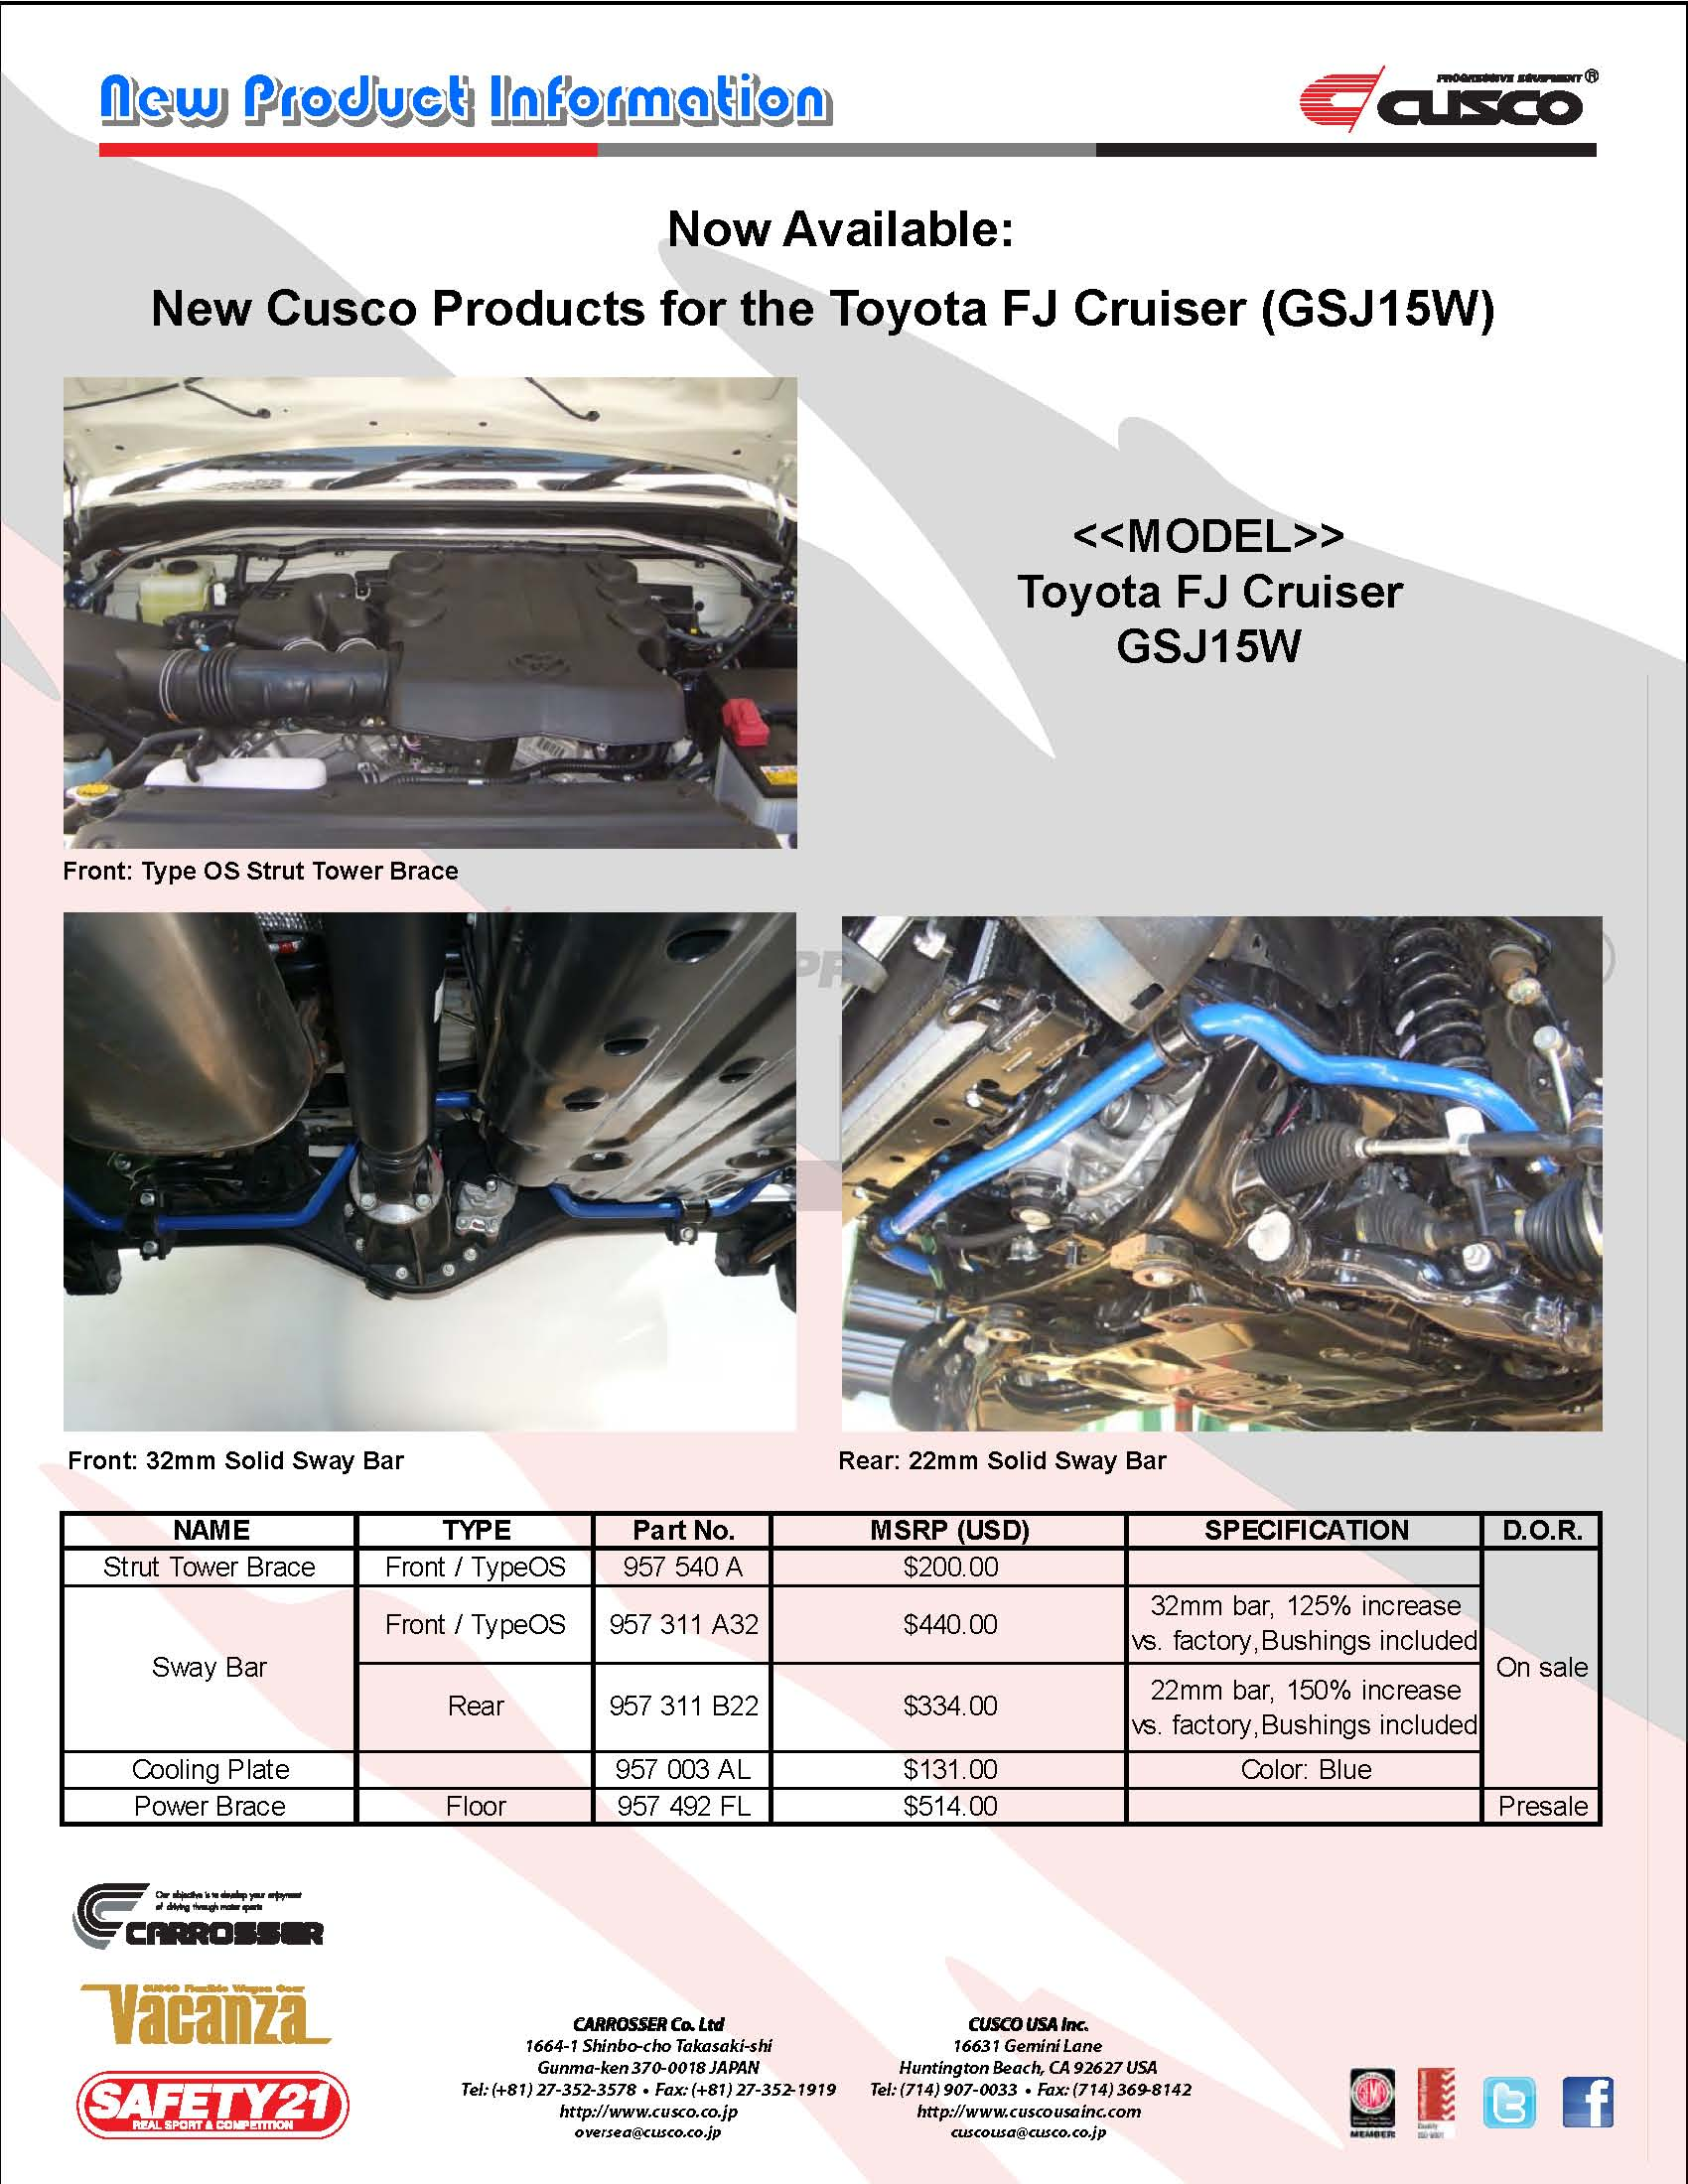 New Products for the Toyota FJ Cruiser (GSJ15W)